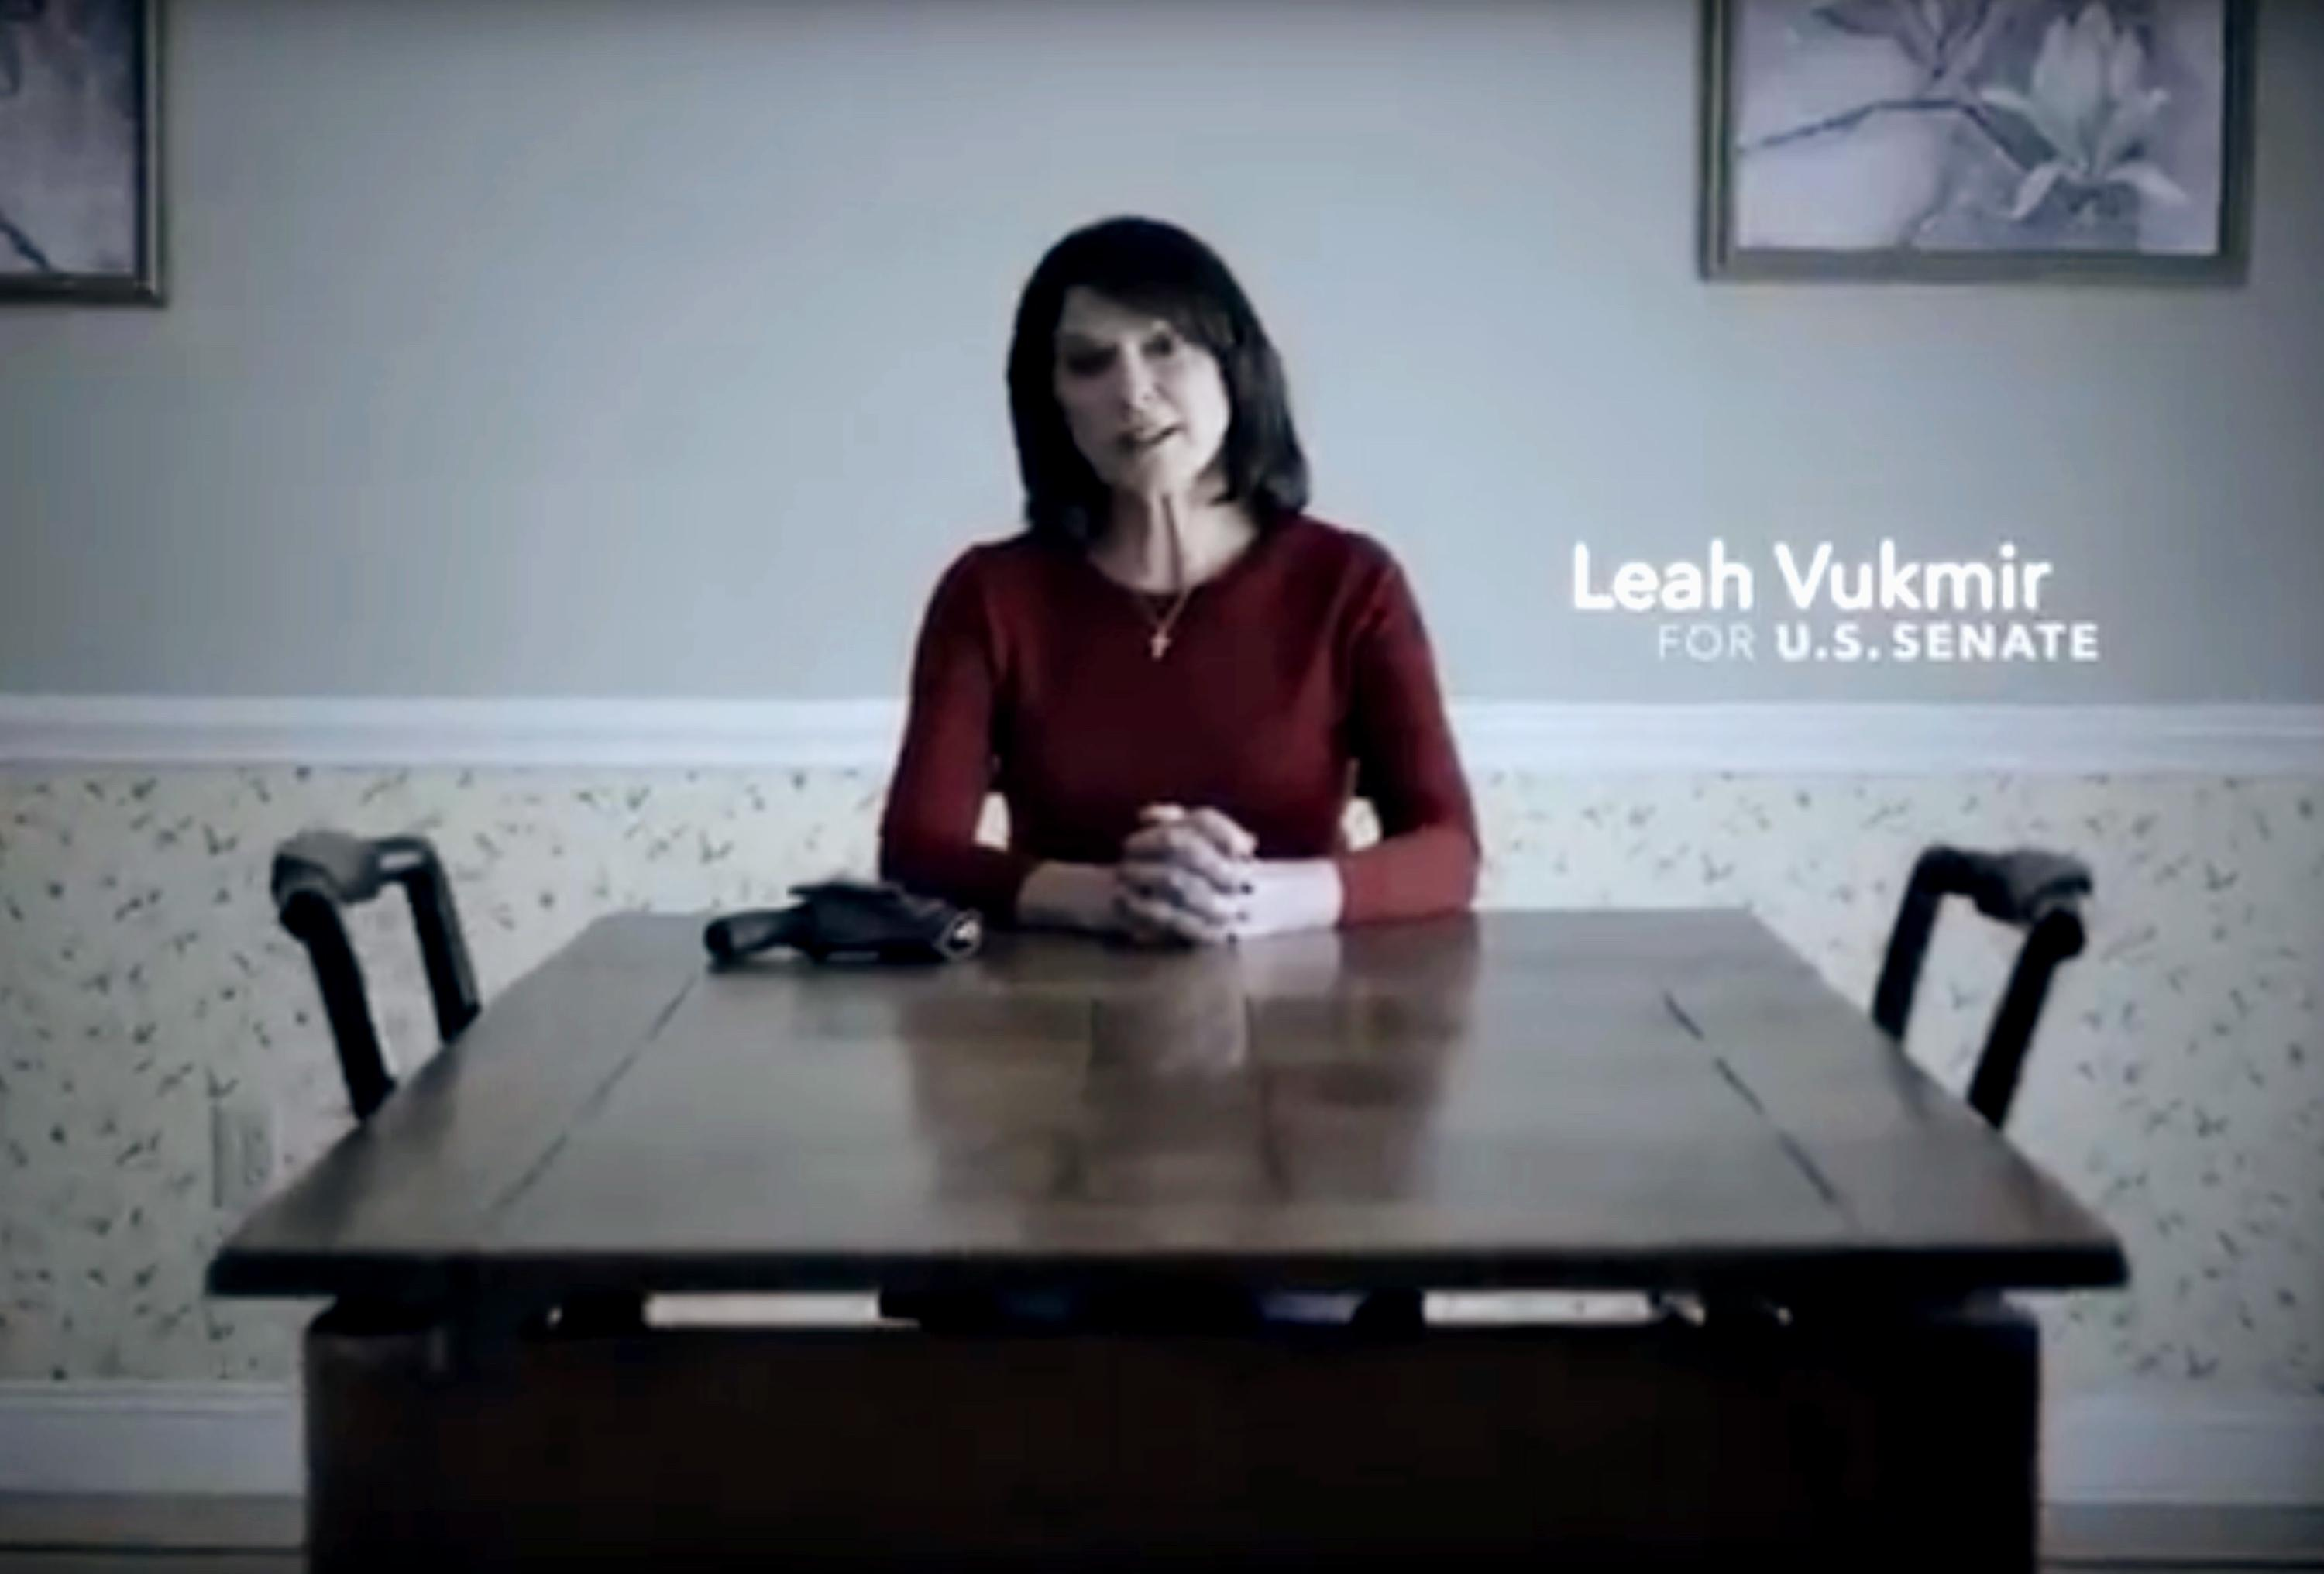 Gun by her side, GOP U.S. Senate candidate talks of threats | The ...